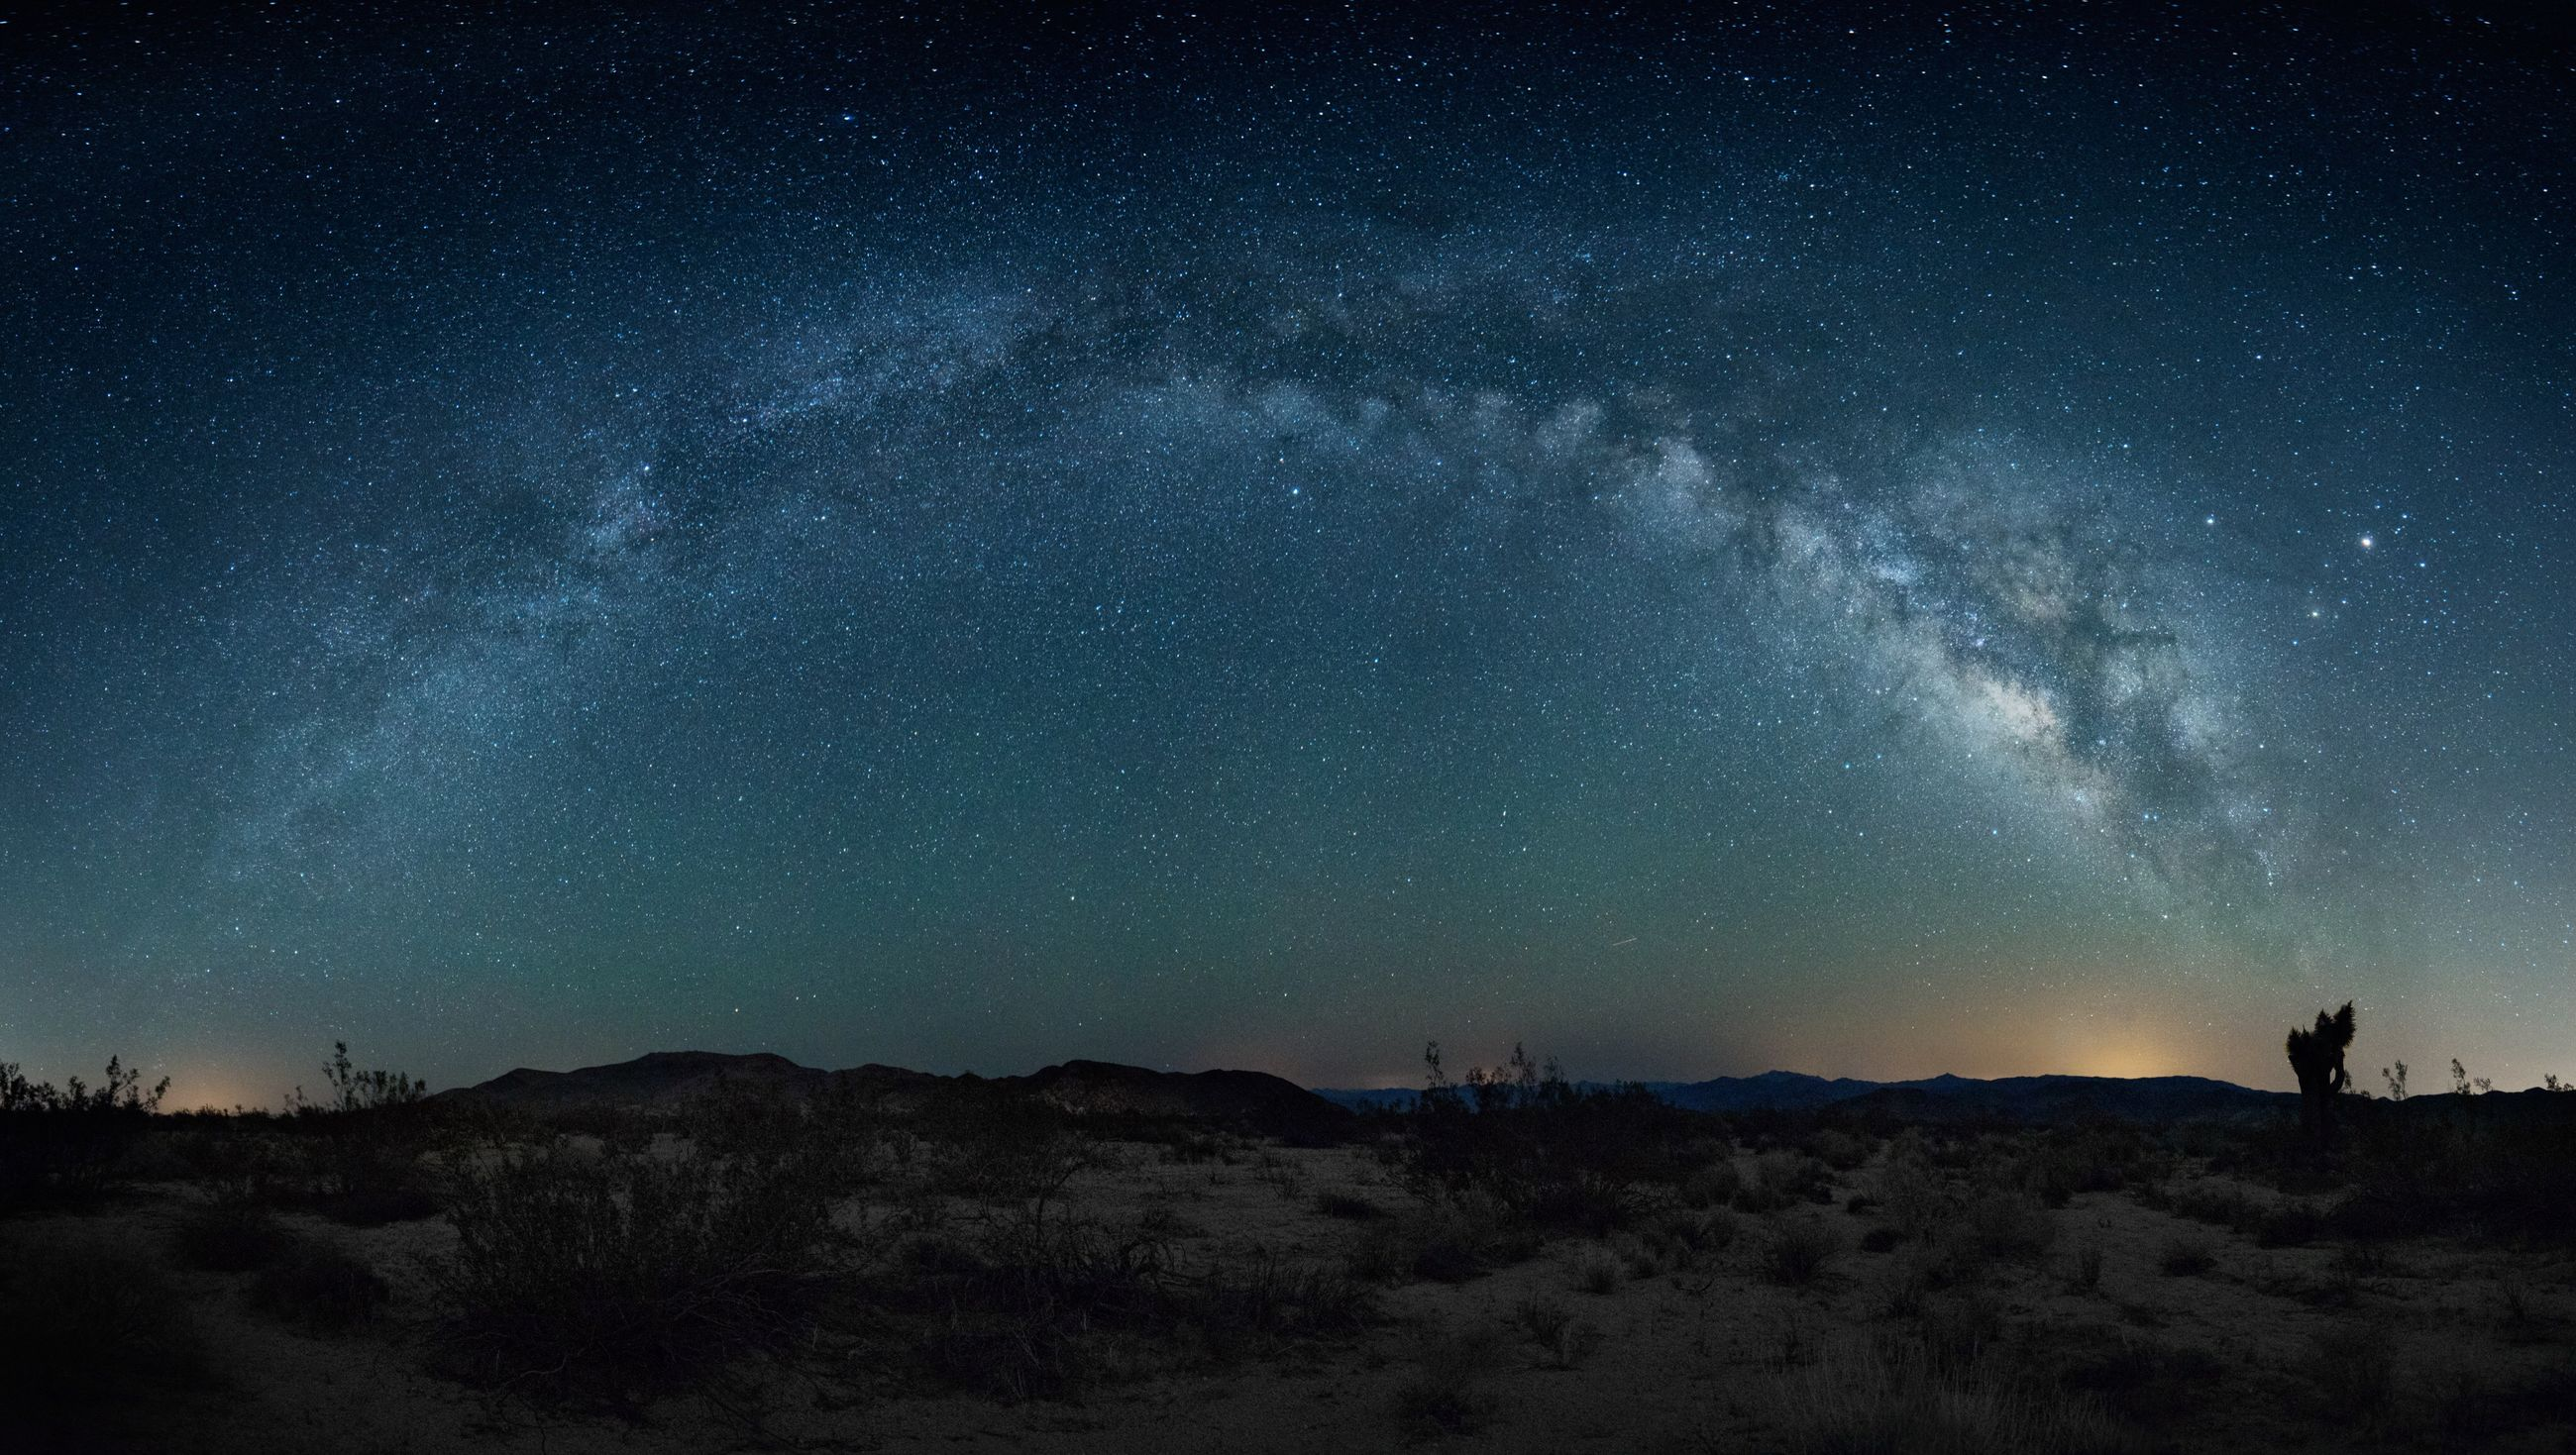 night, star - space, star field, tranquil scene, astronomy, scenics, tranquility, beauty in nature, galaxy, sky, space, star, landscape, nature, infinity, milky way, idyllic, constellation, dark, low angle view